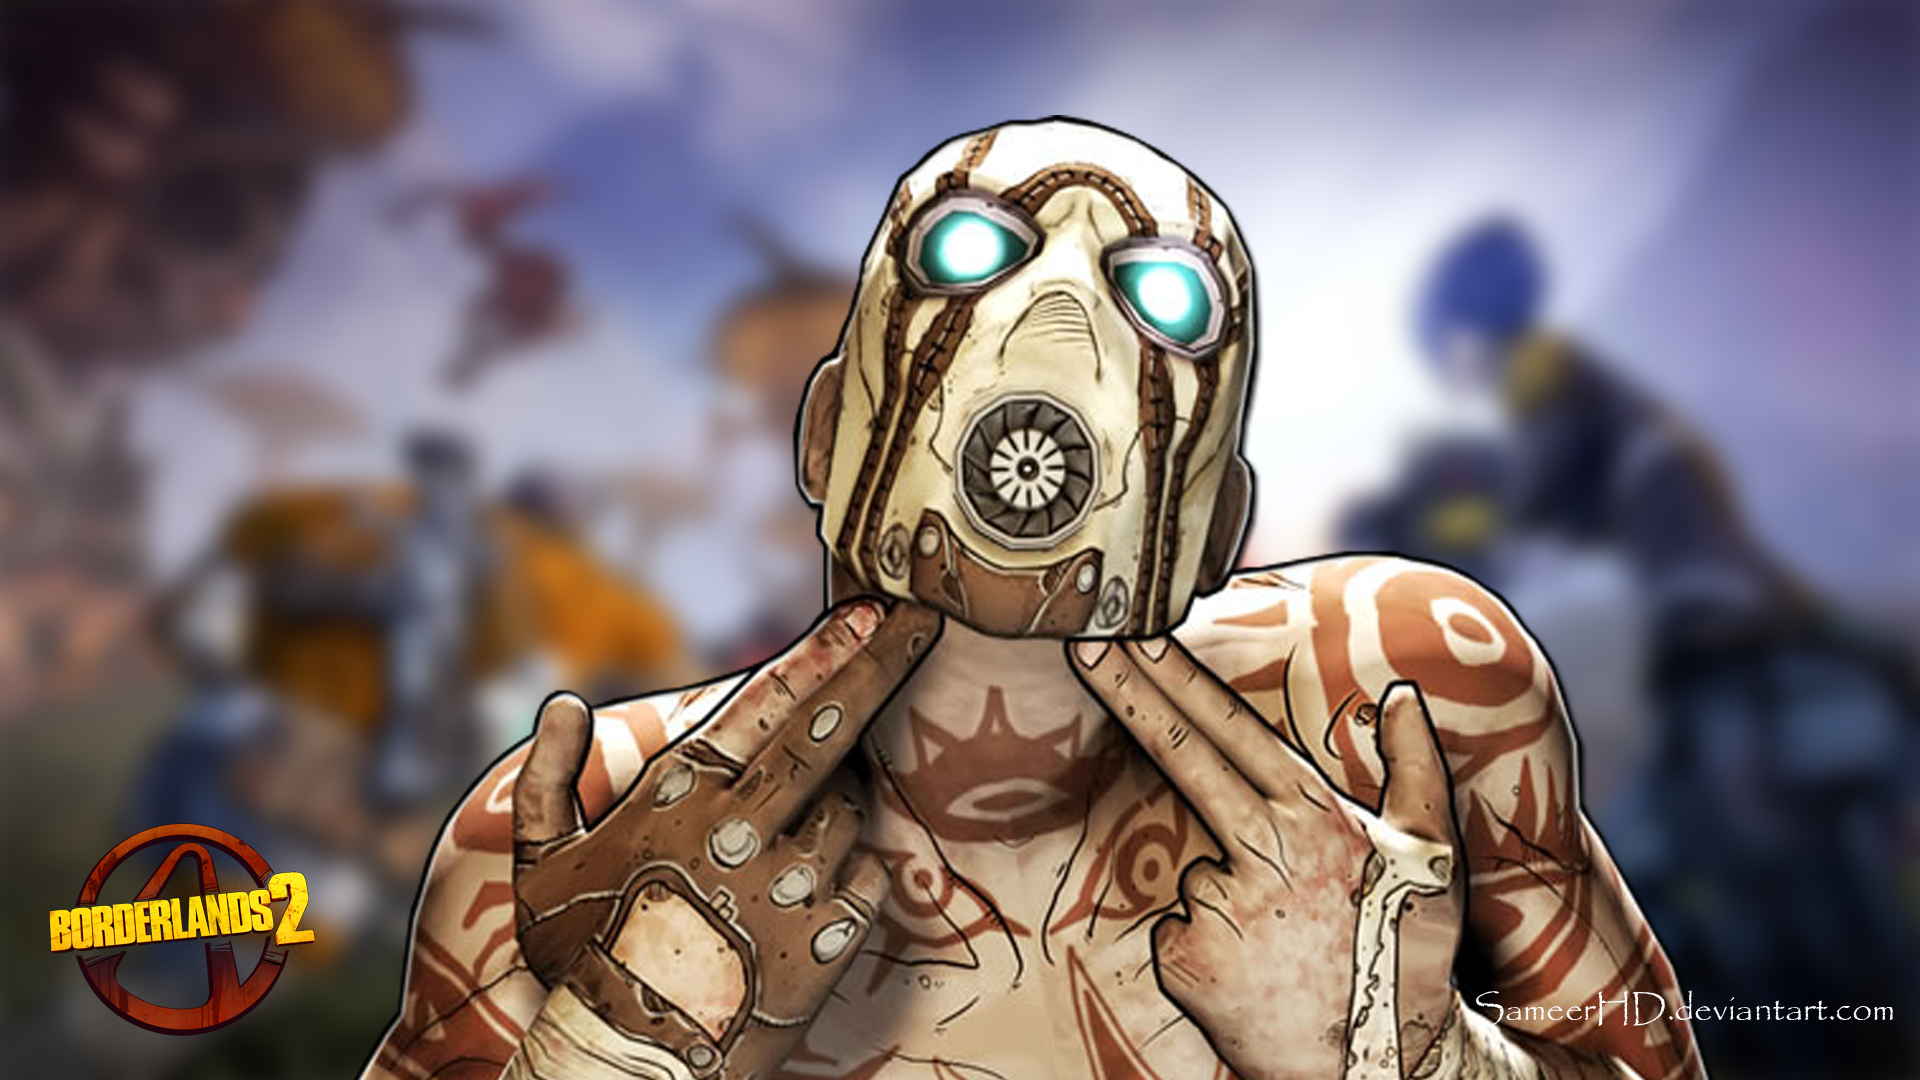 Borderlands 2 Psycho Wallpaper By SameerHD On DeviantArt